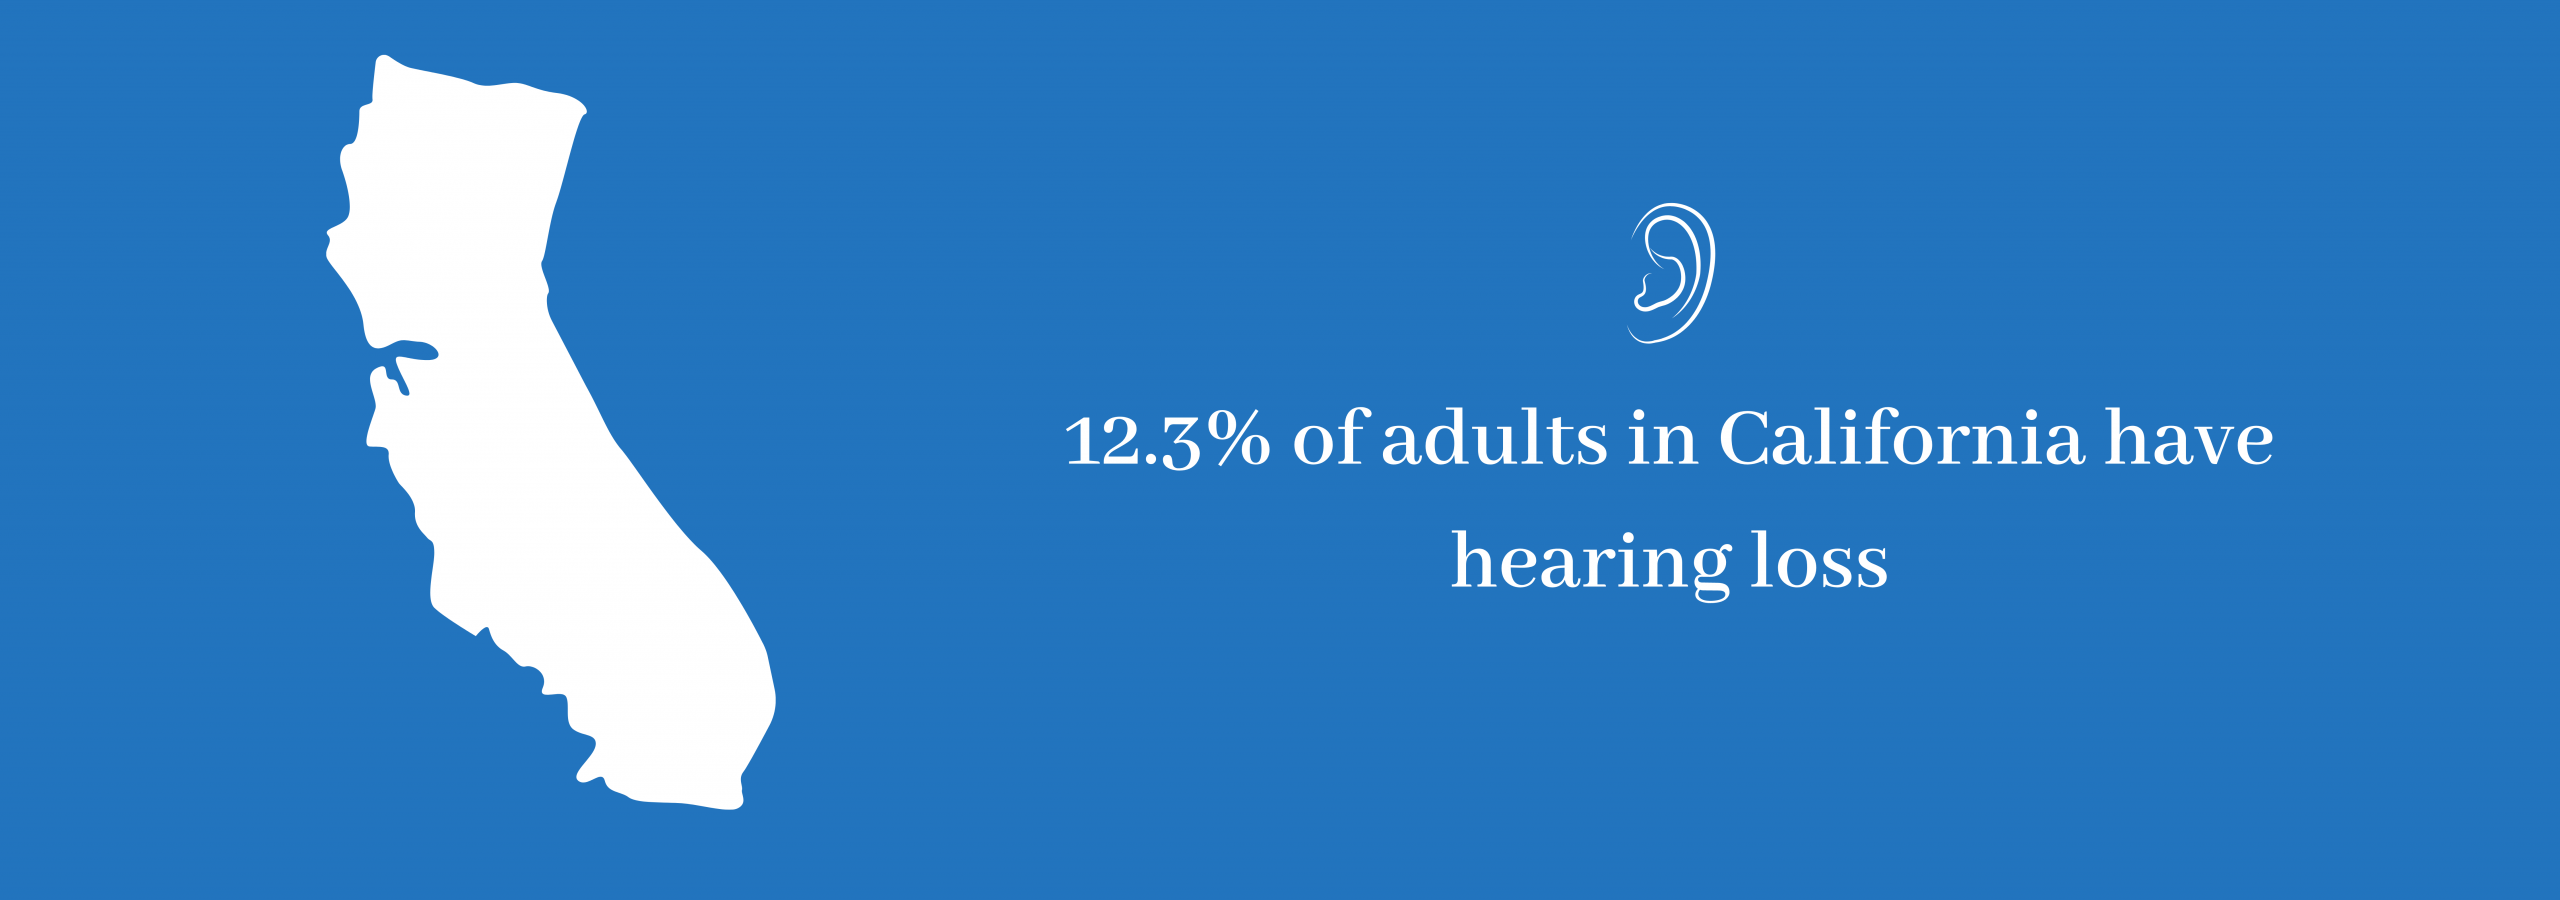 12.3% of adults in California have hearing loss